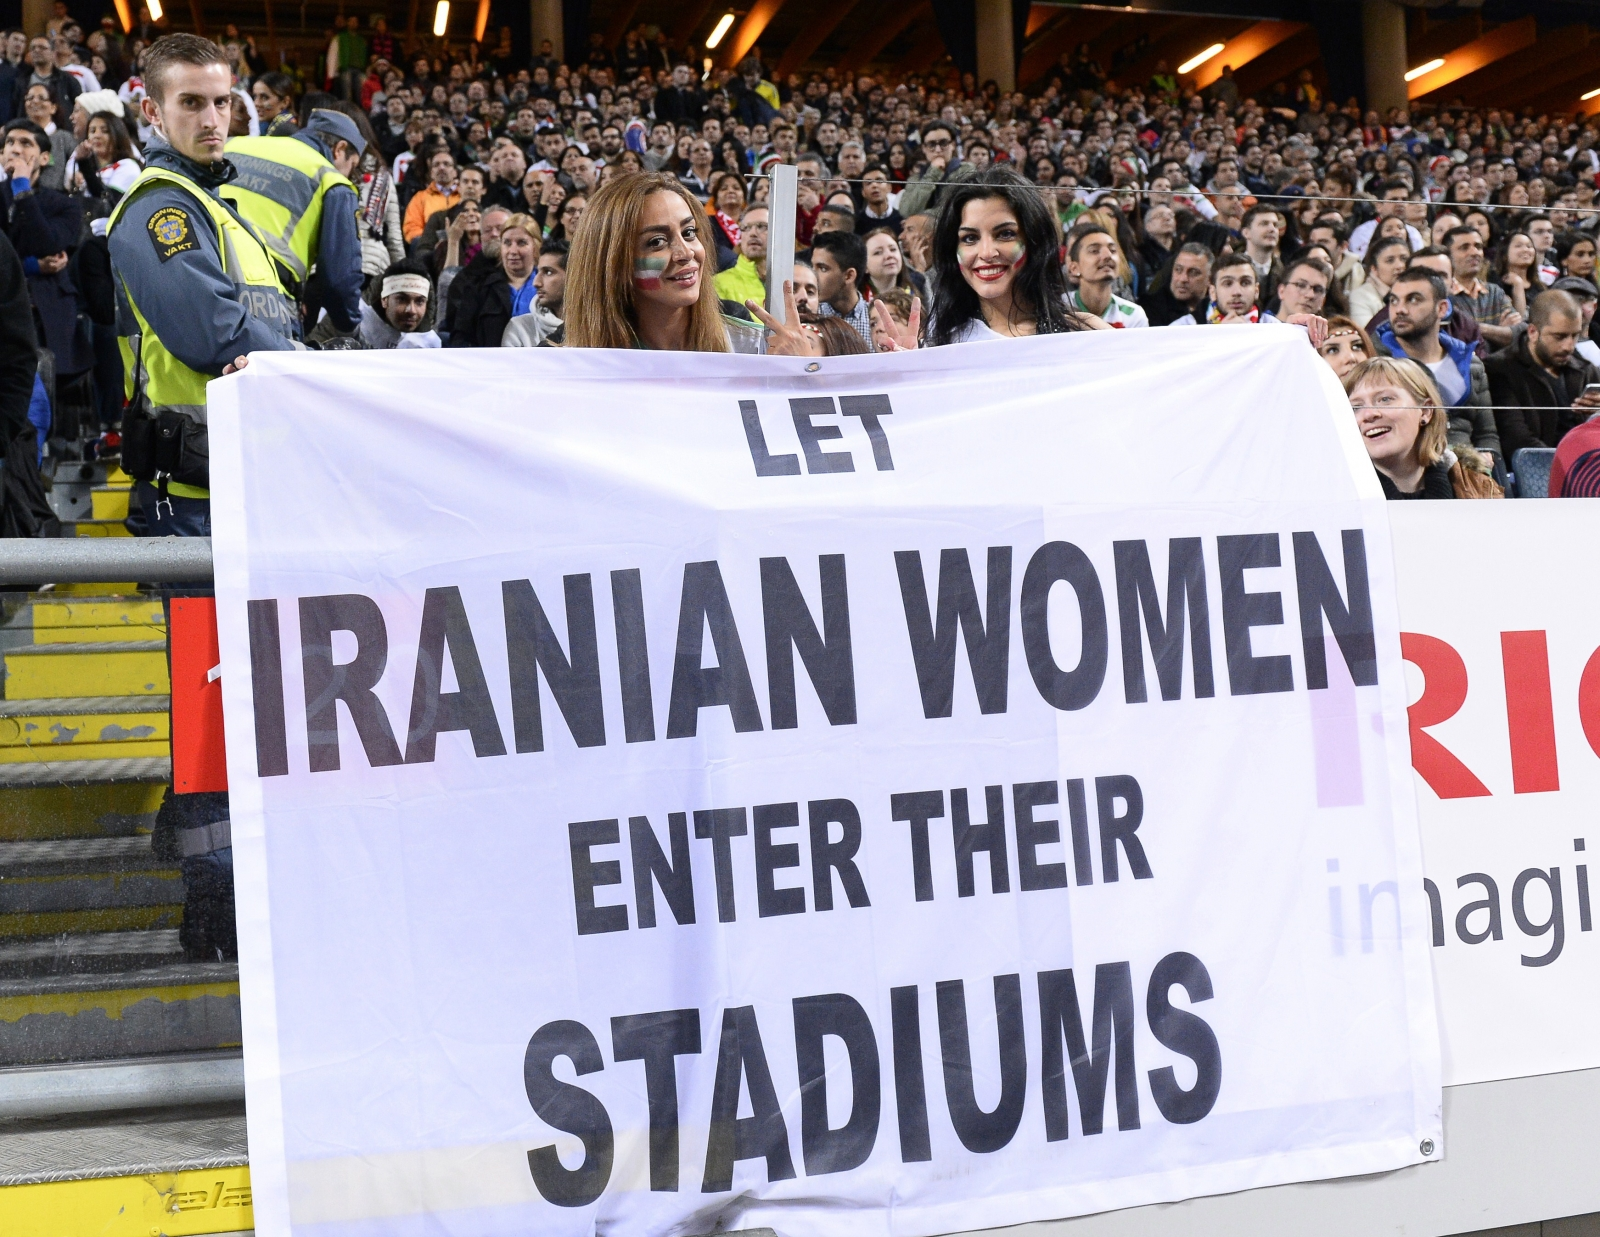 Iran women stadium protest